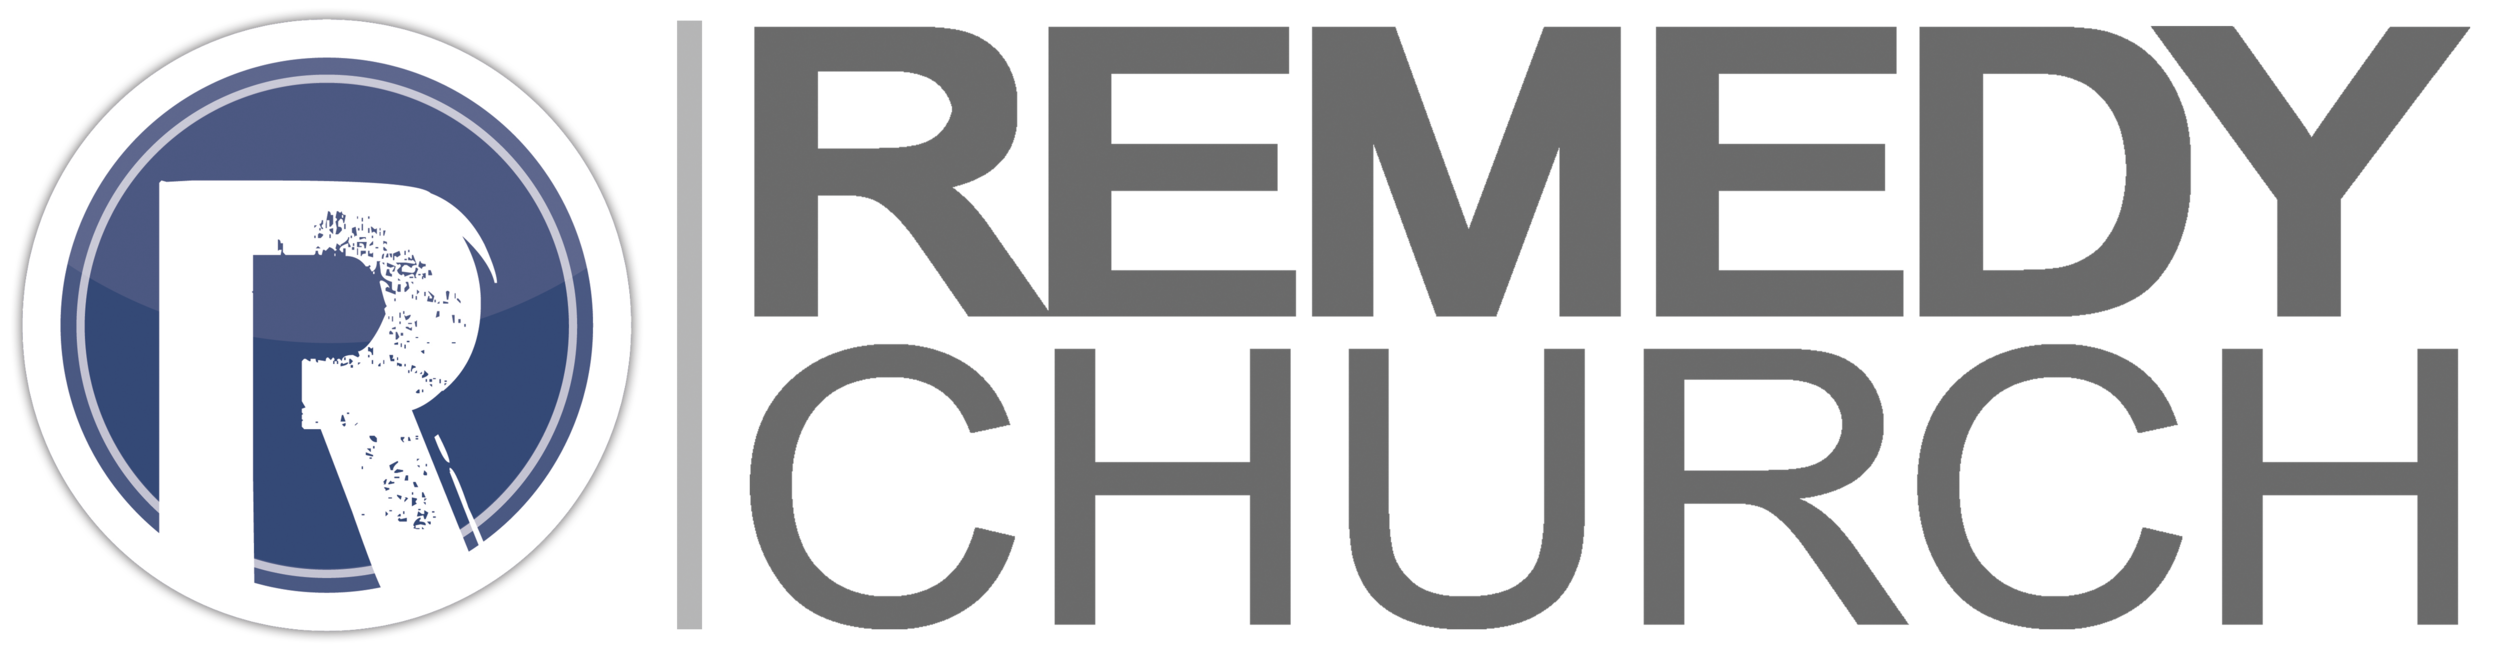 Remedy Church Graphic_shadow.png